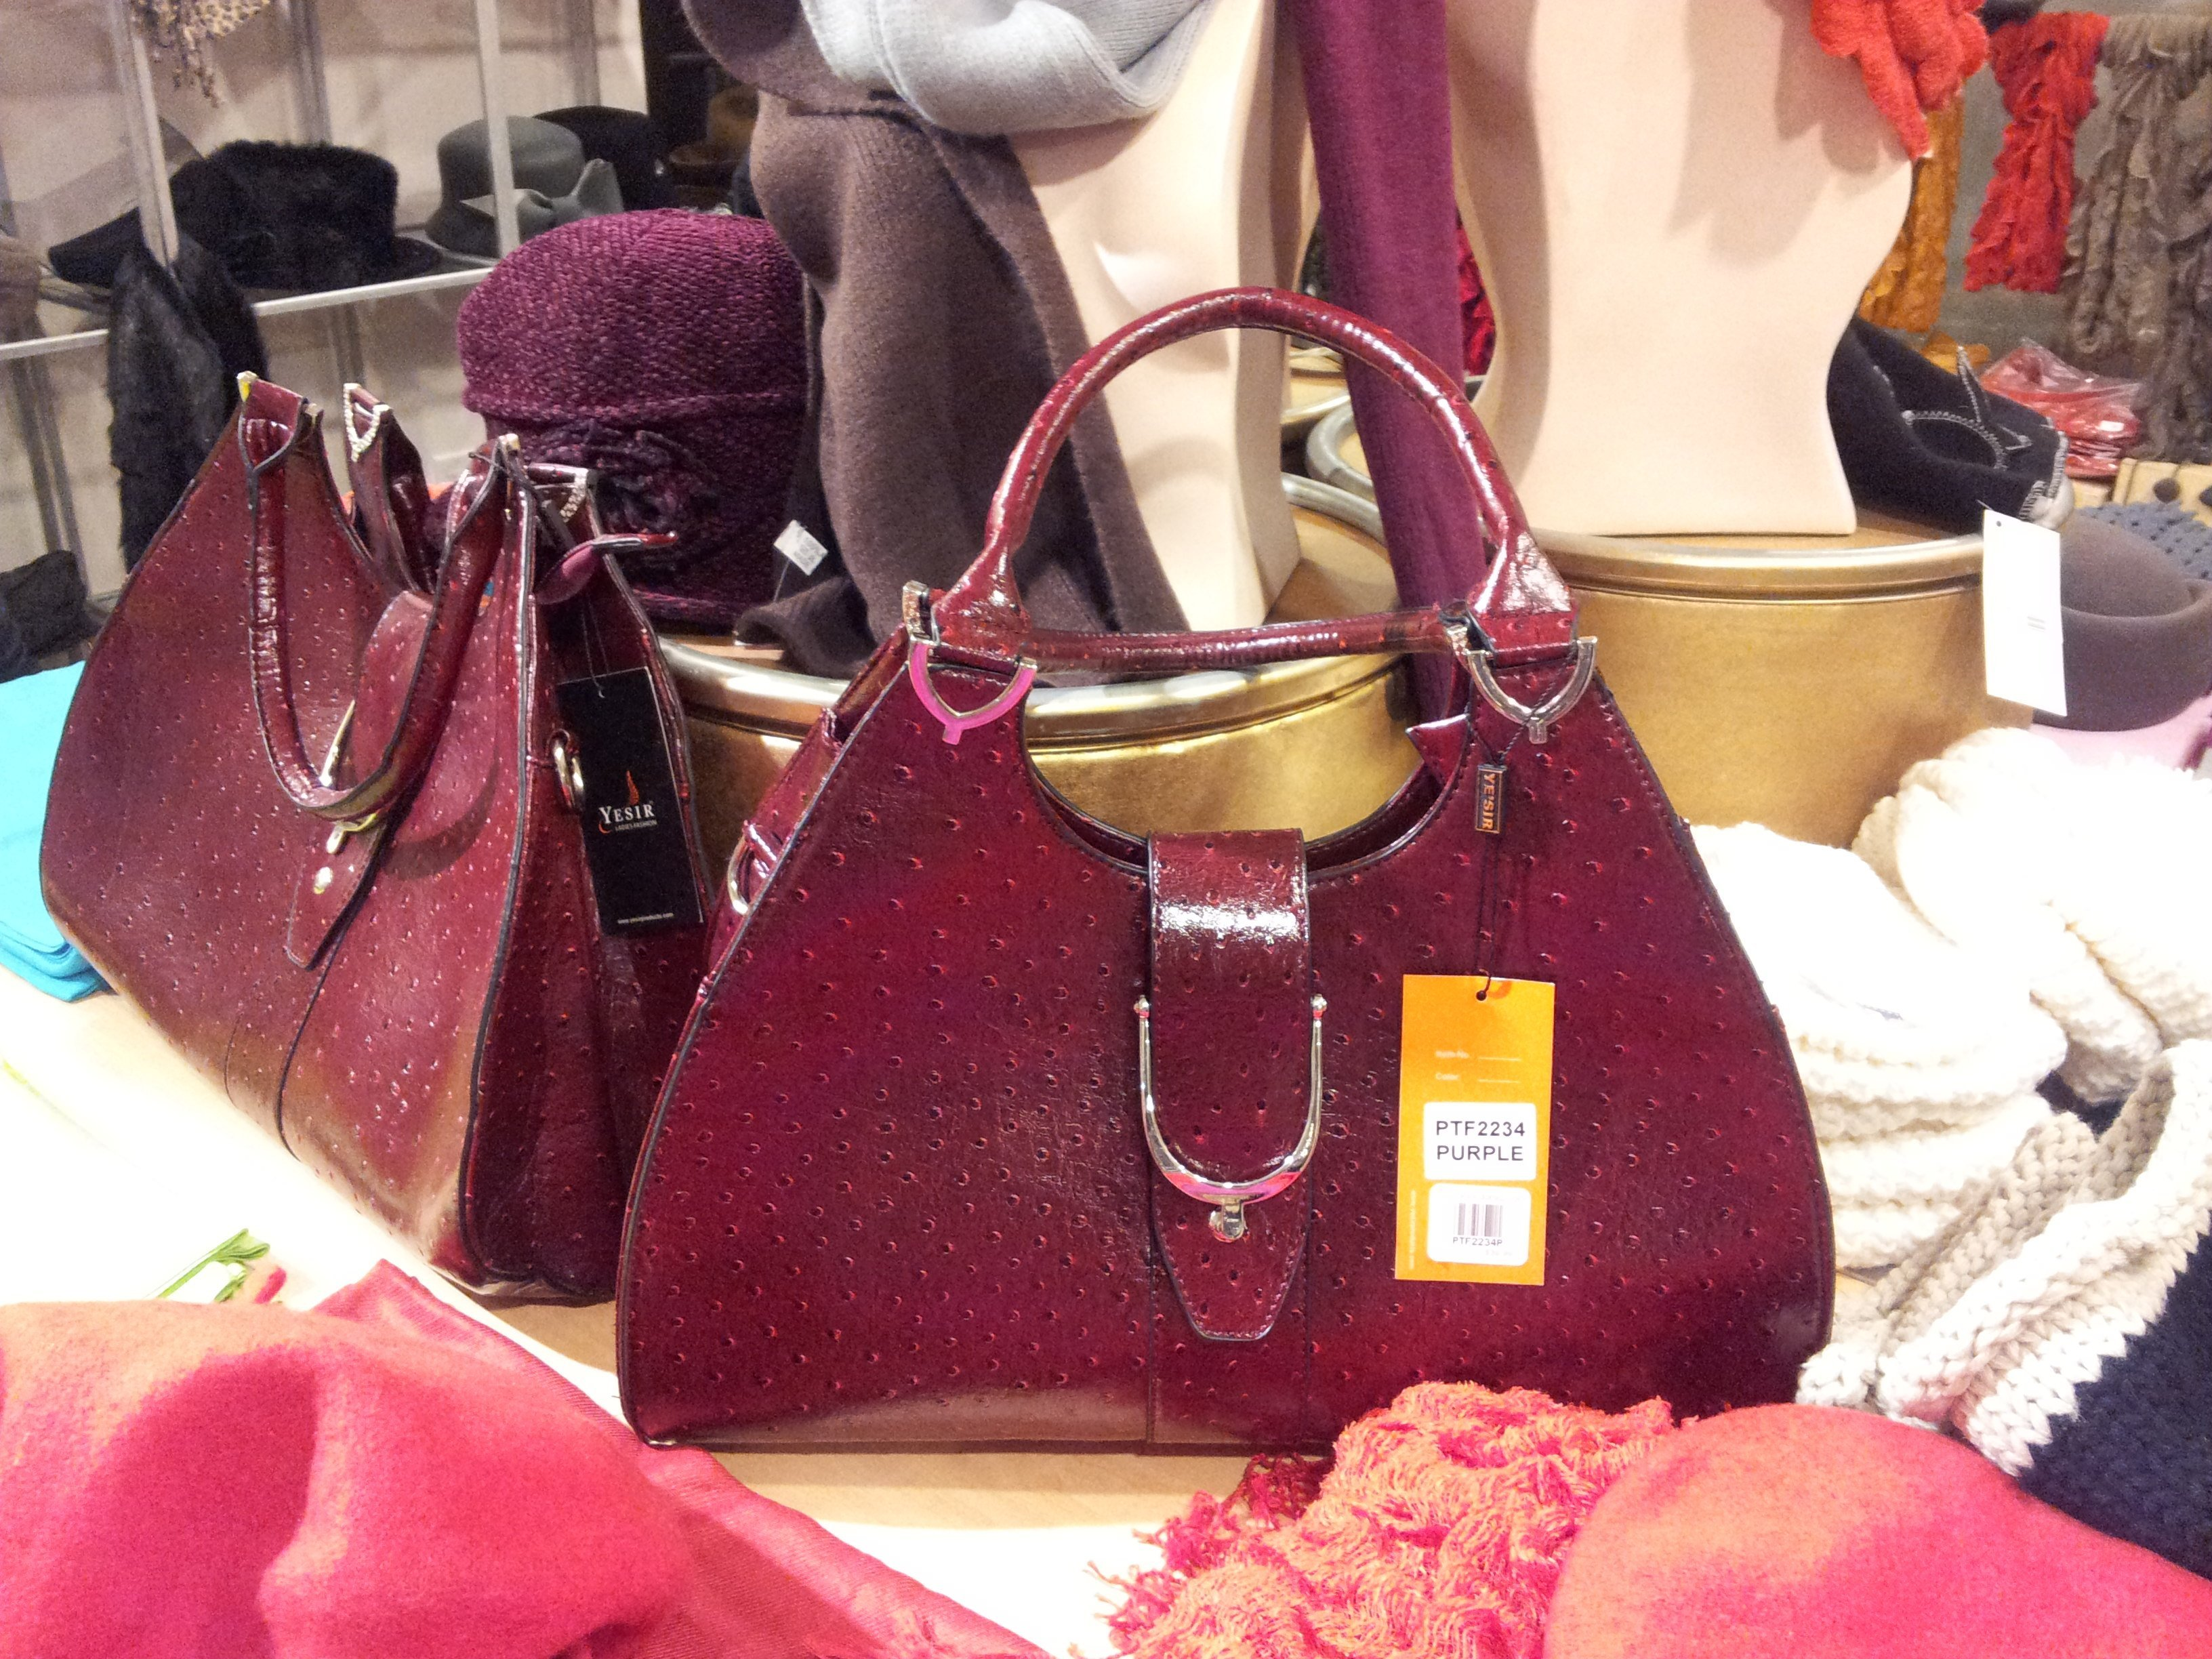 Gorgeous purple handbag from Dom itp